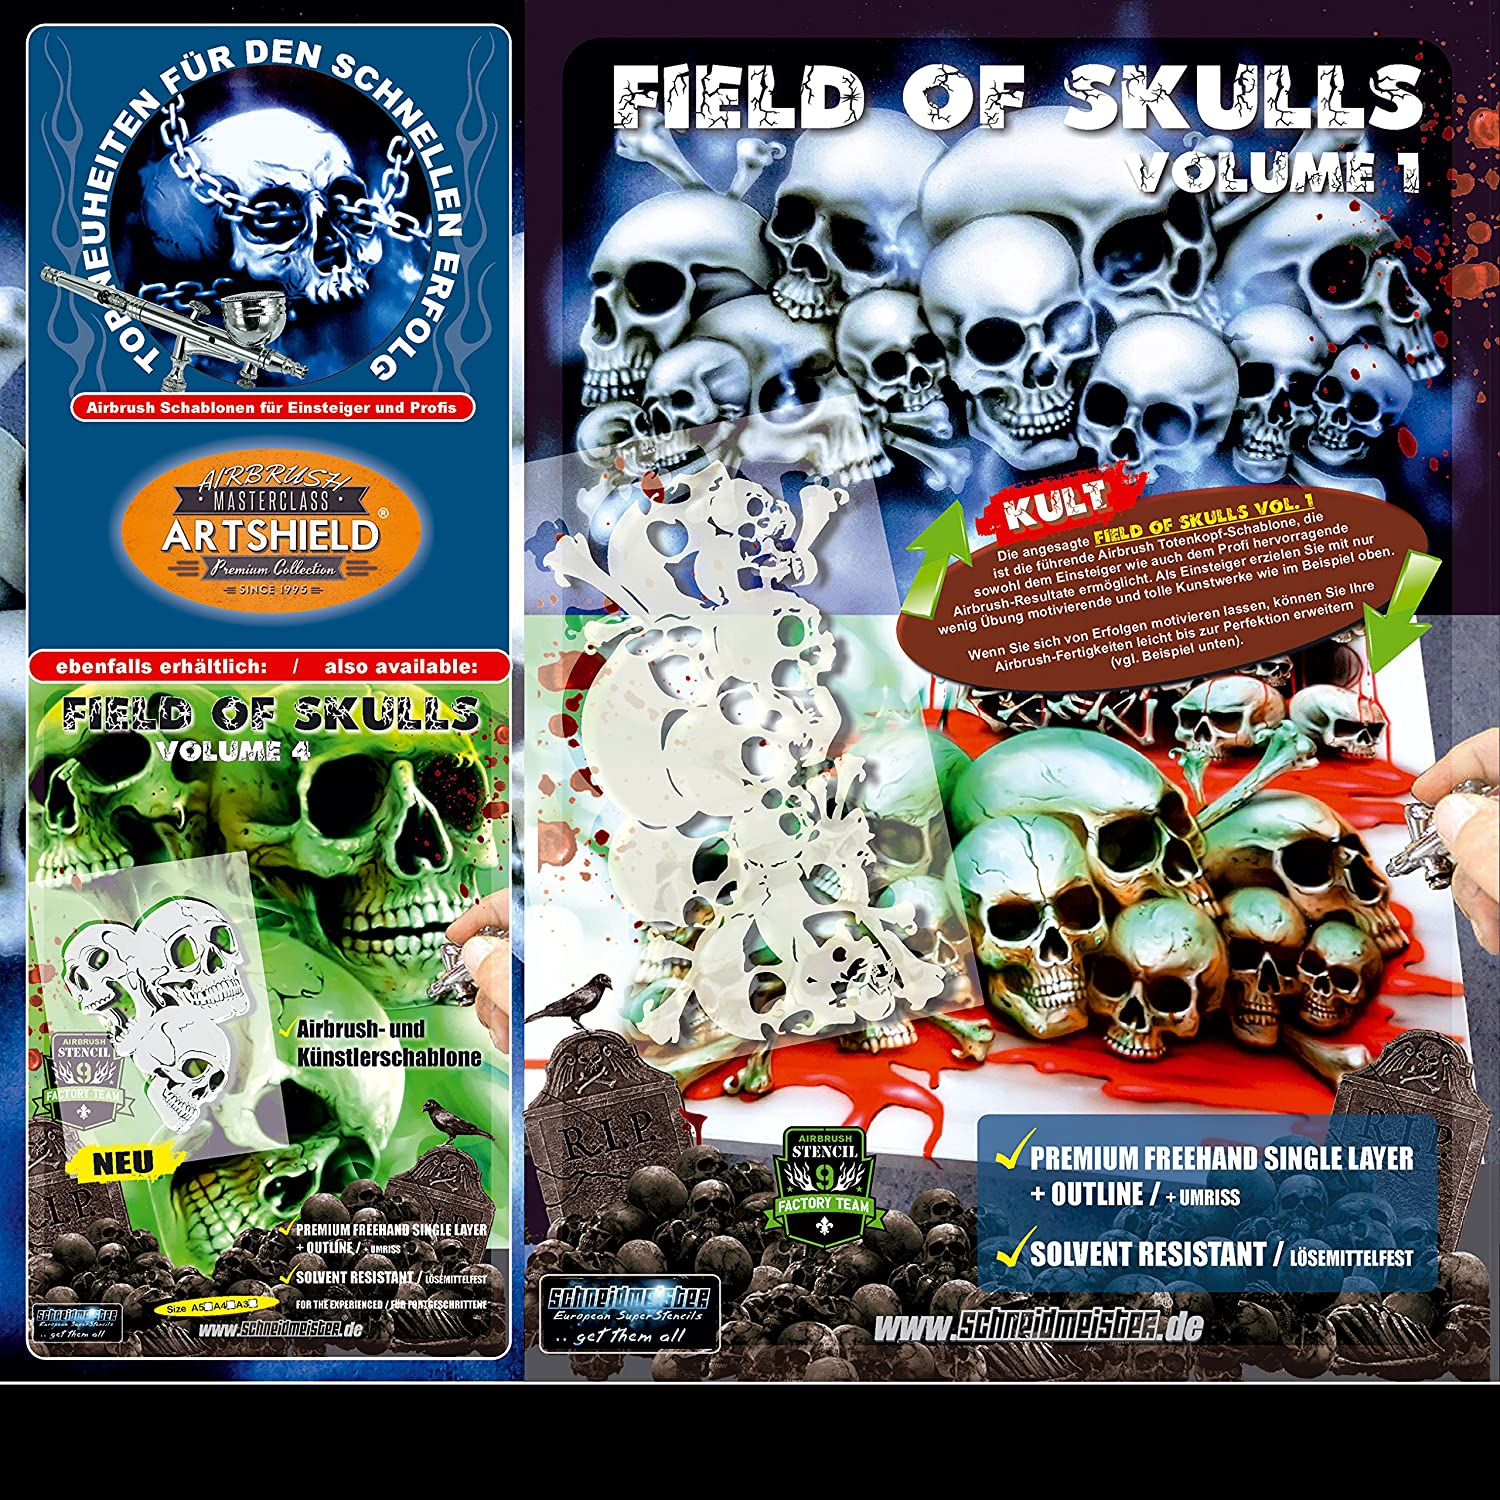 Amazon.com: Schneidmeister Airbrush Stencil FIELD OF SKULLS (Size -LARGE-) Mylar Template, two layer single Quickstep, EZ SuperStencil, SM-FOS001